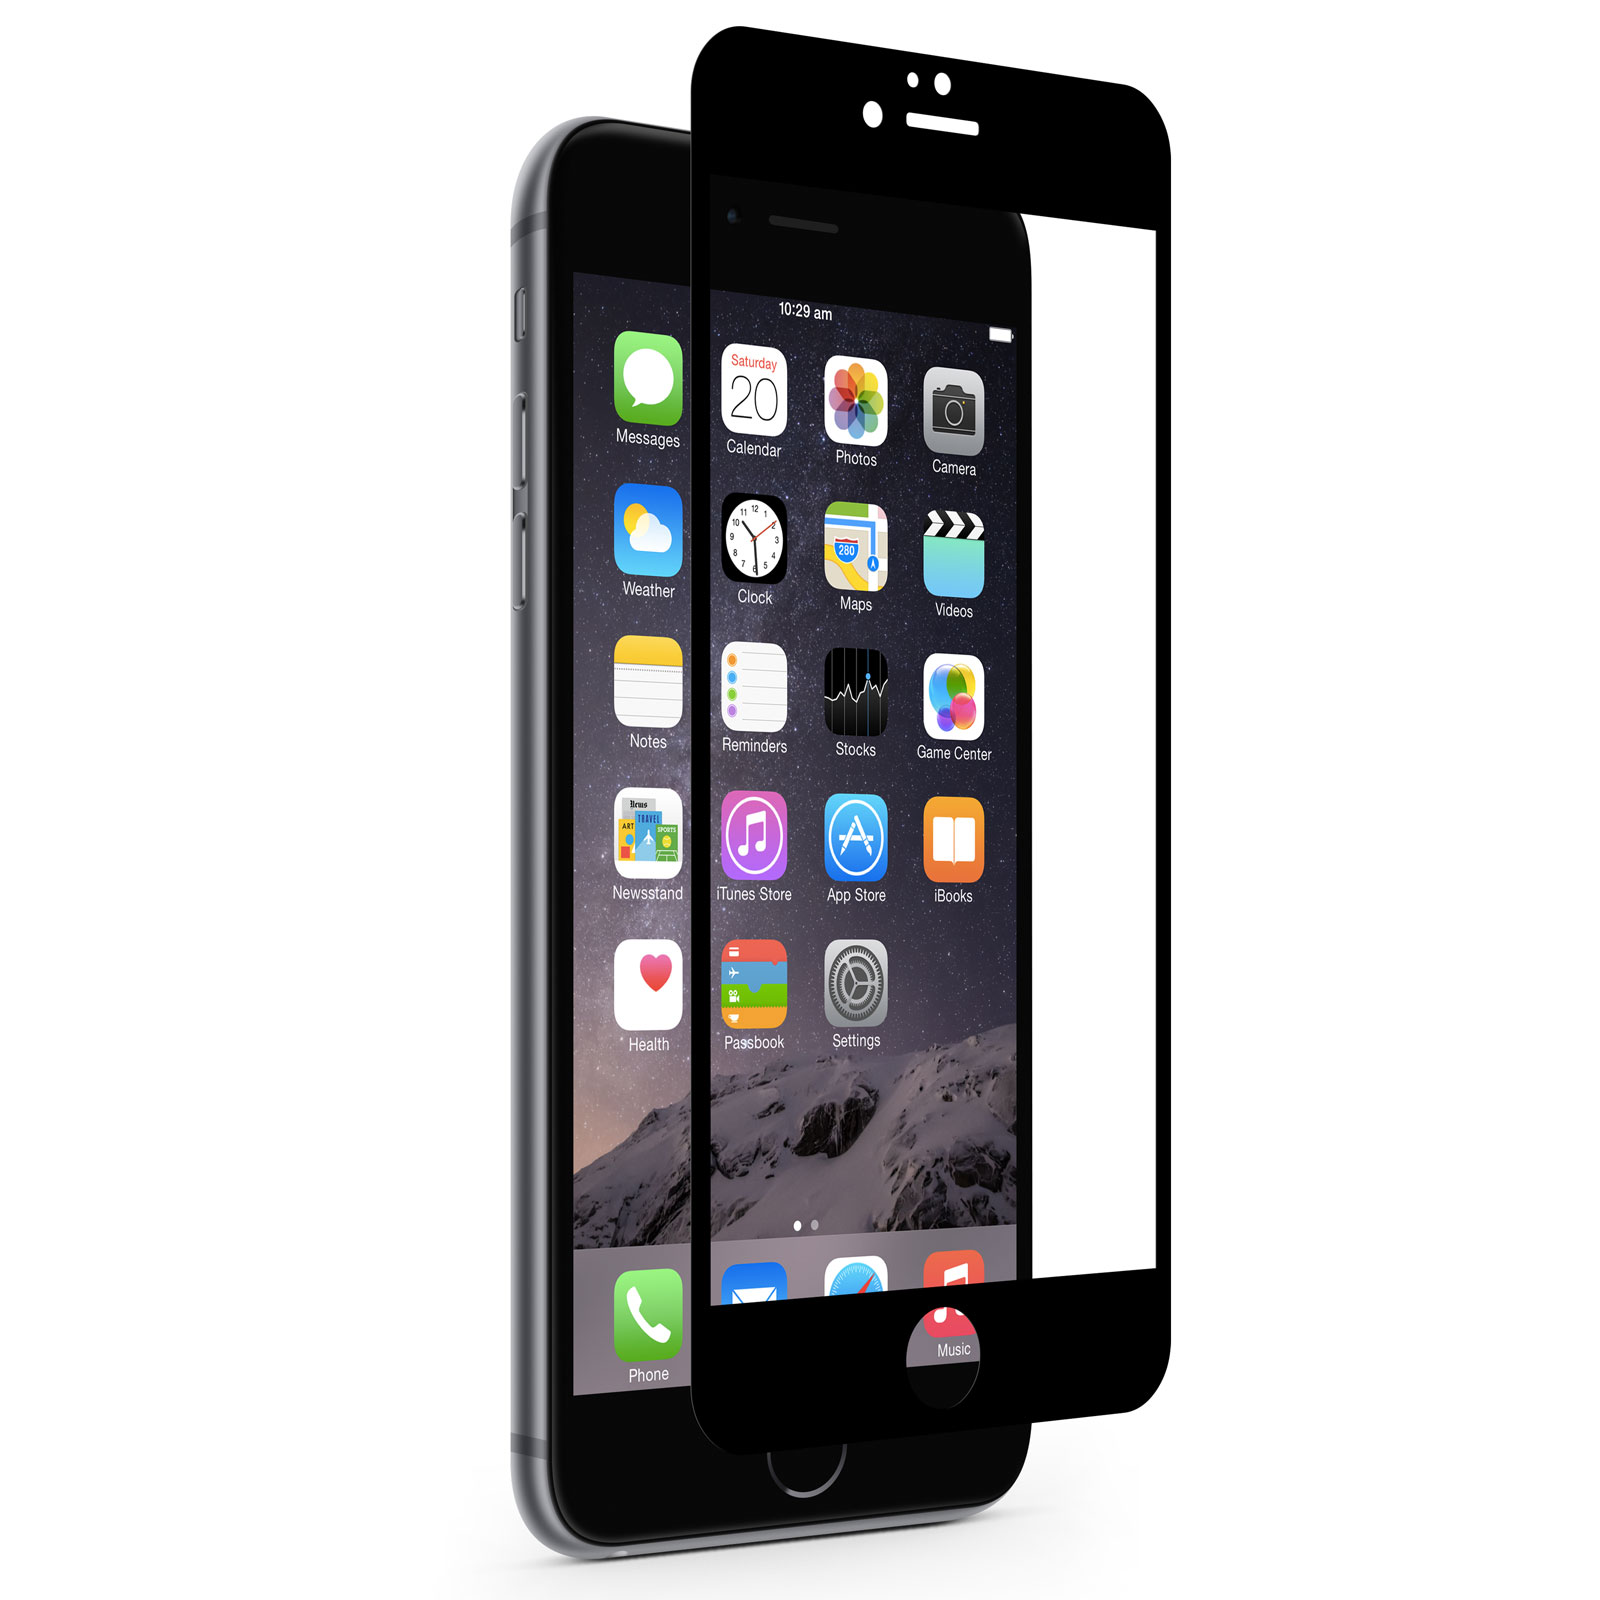 iPhone 6 Screen Protector - Shop iPhone Screen Protector | Black iVisor by Moshi